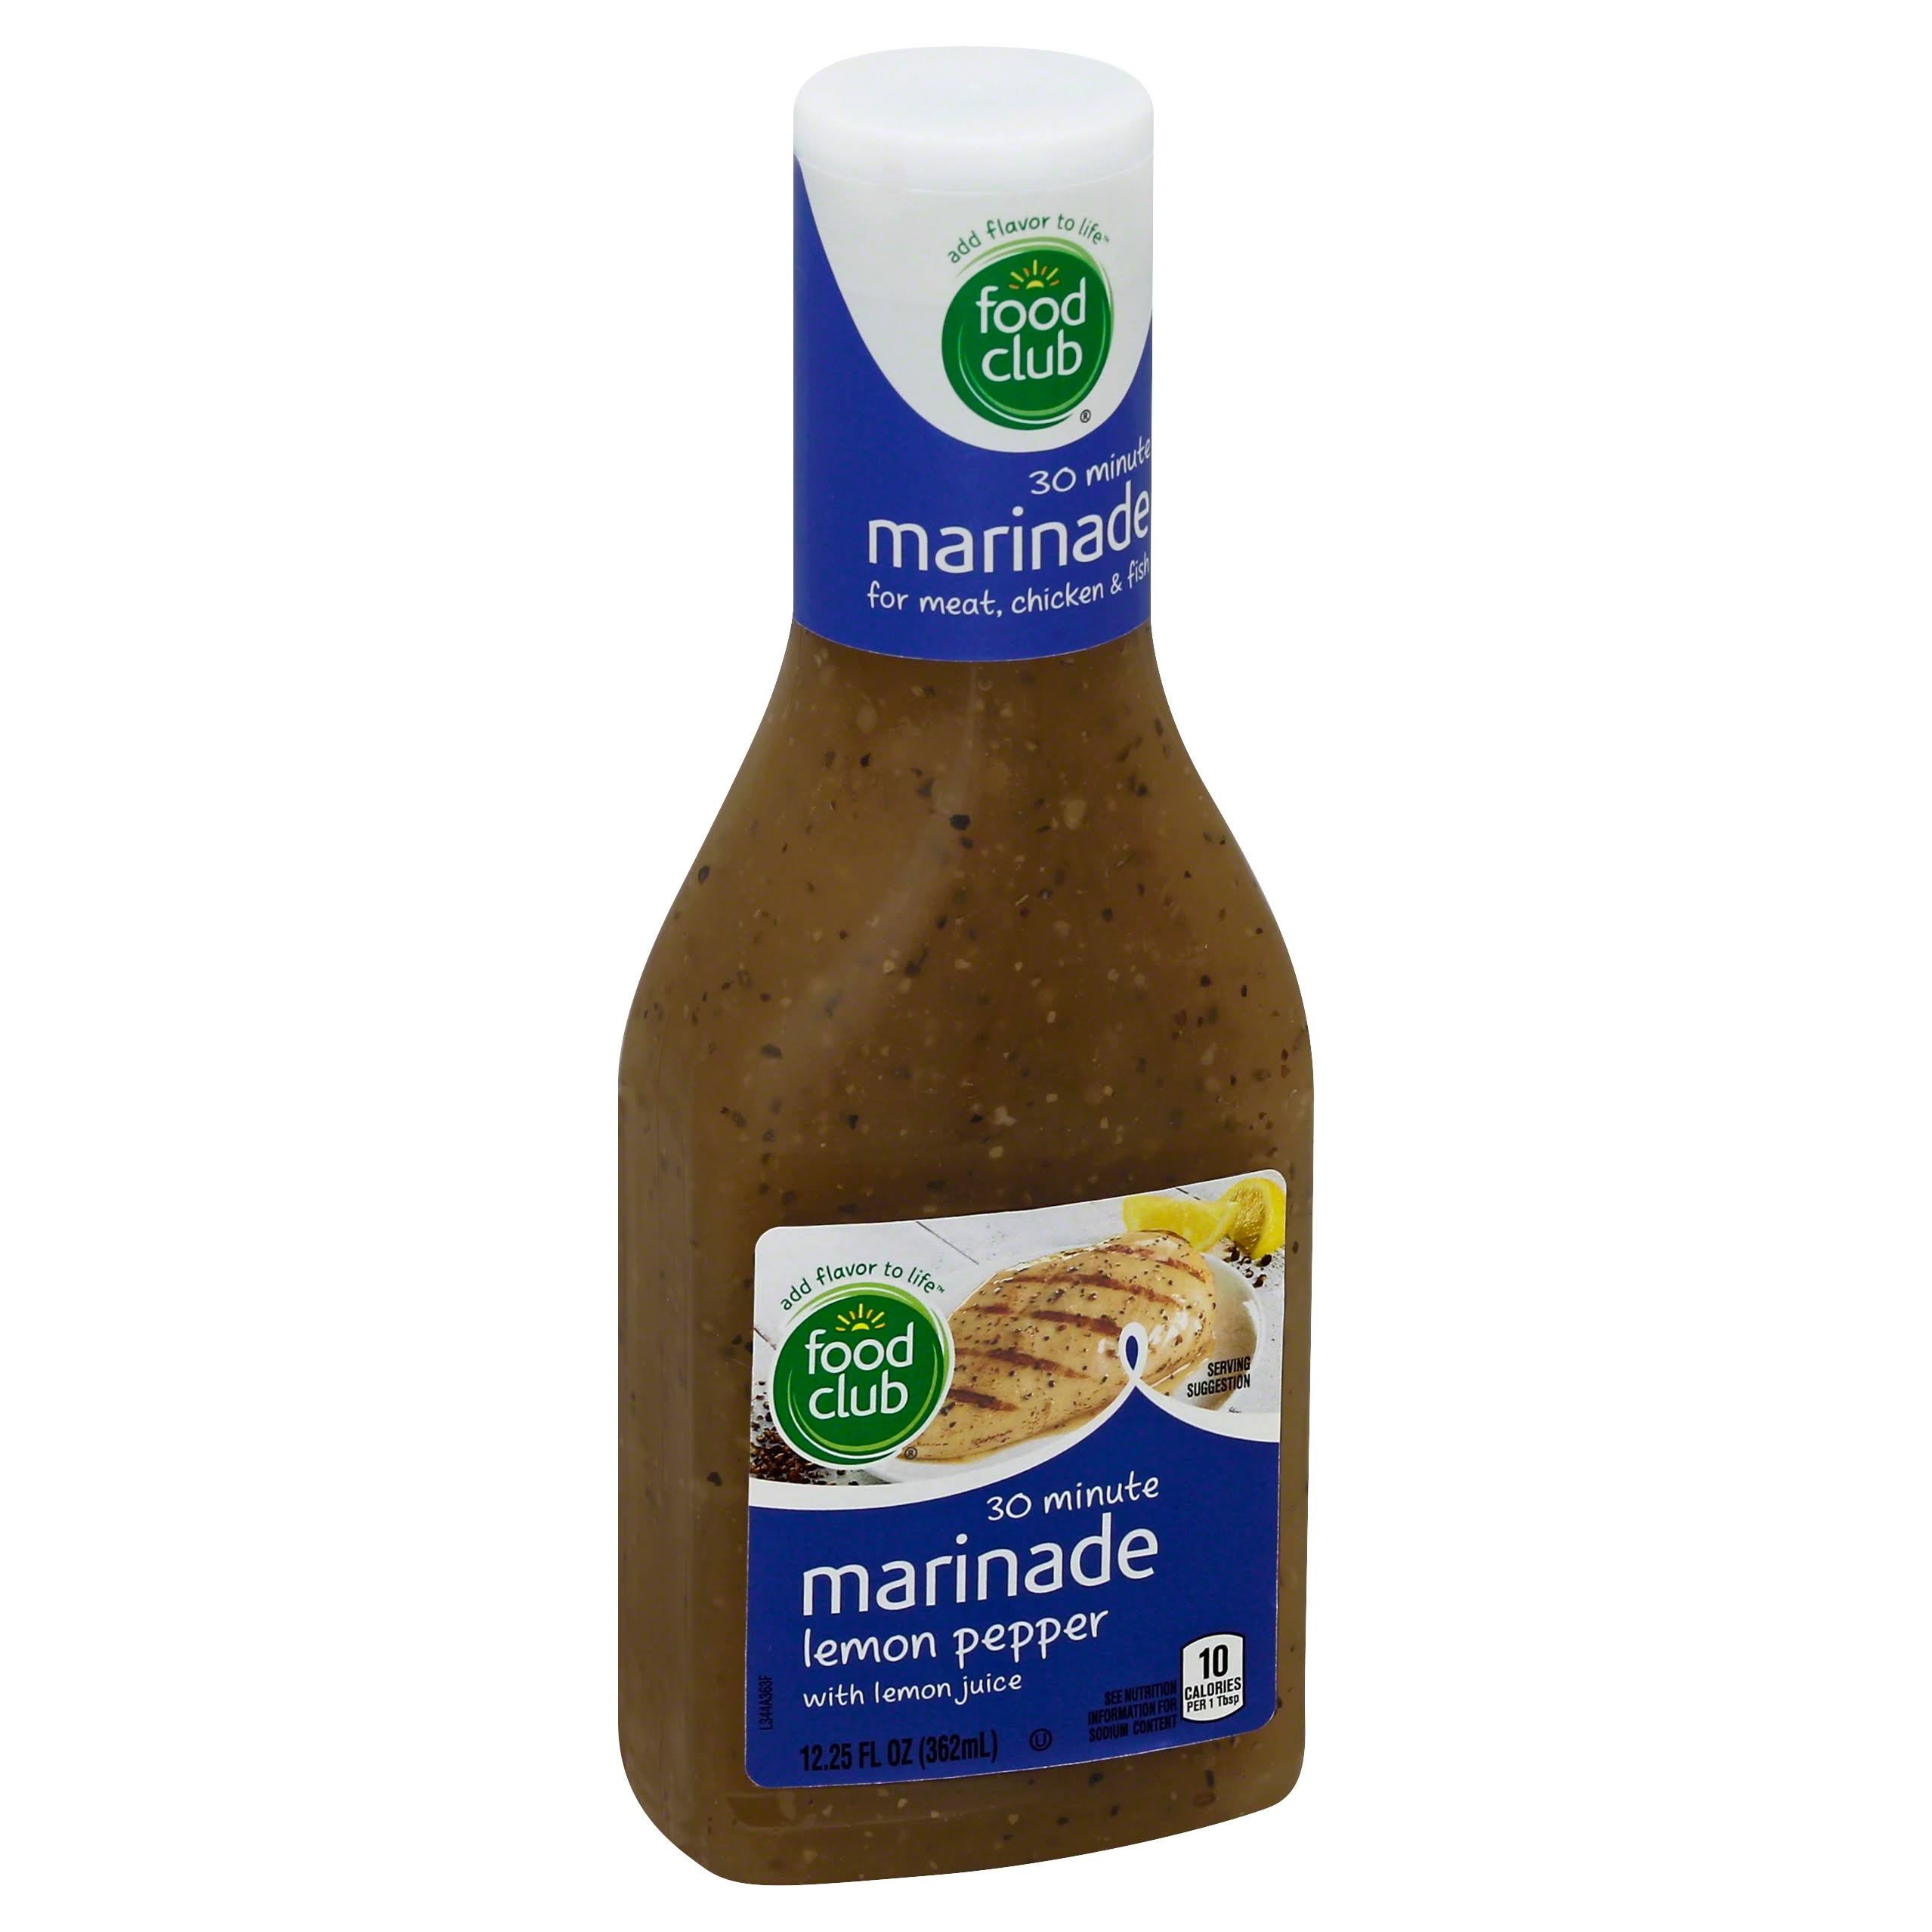 Food Club Marinade, 30 Minute, Lemon Pepper - 12.25 fl oz